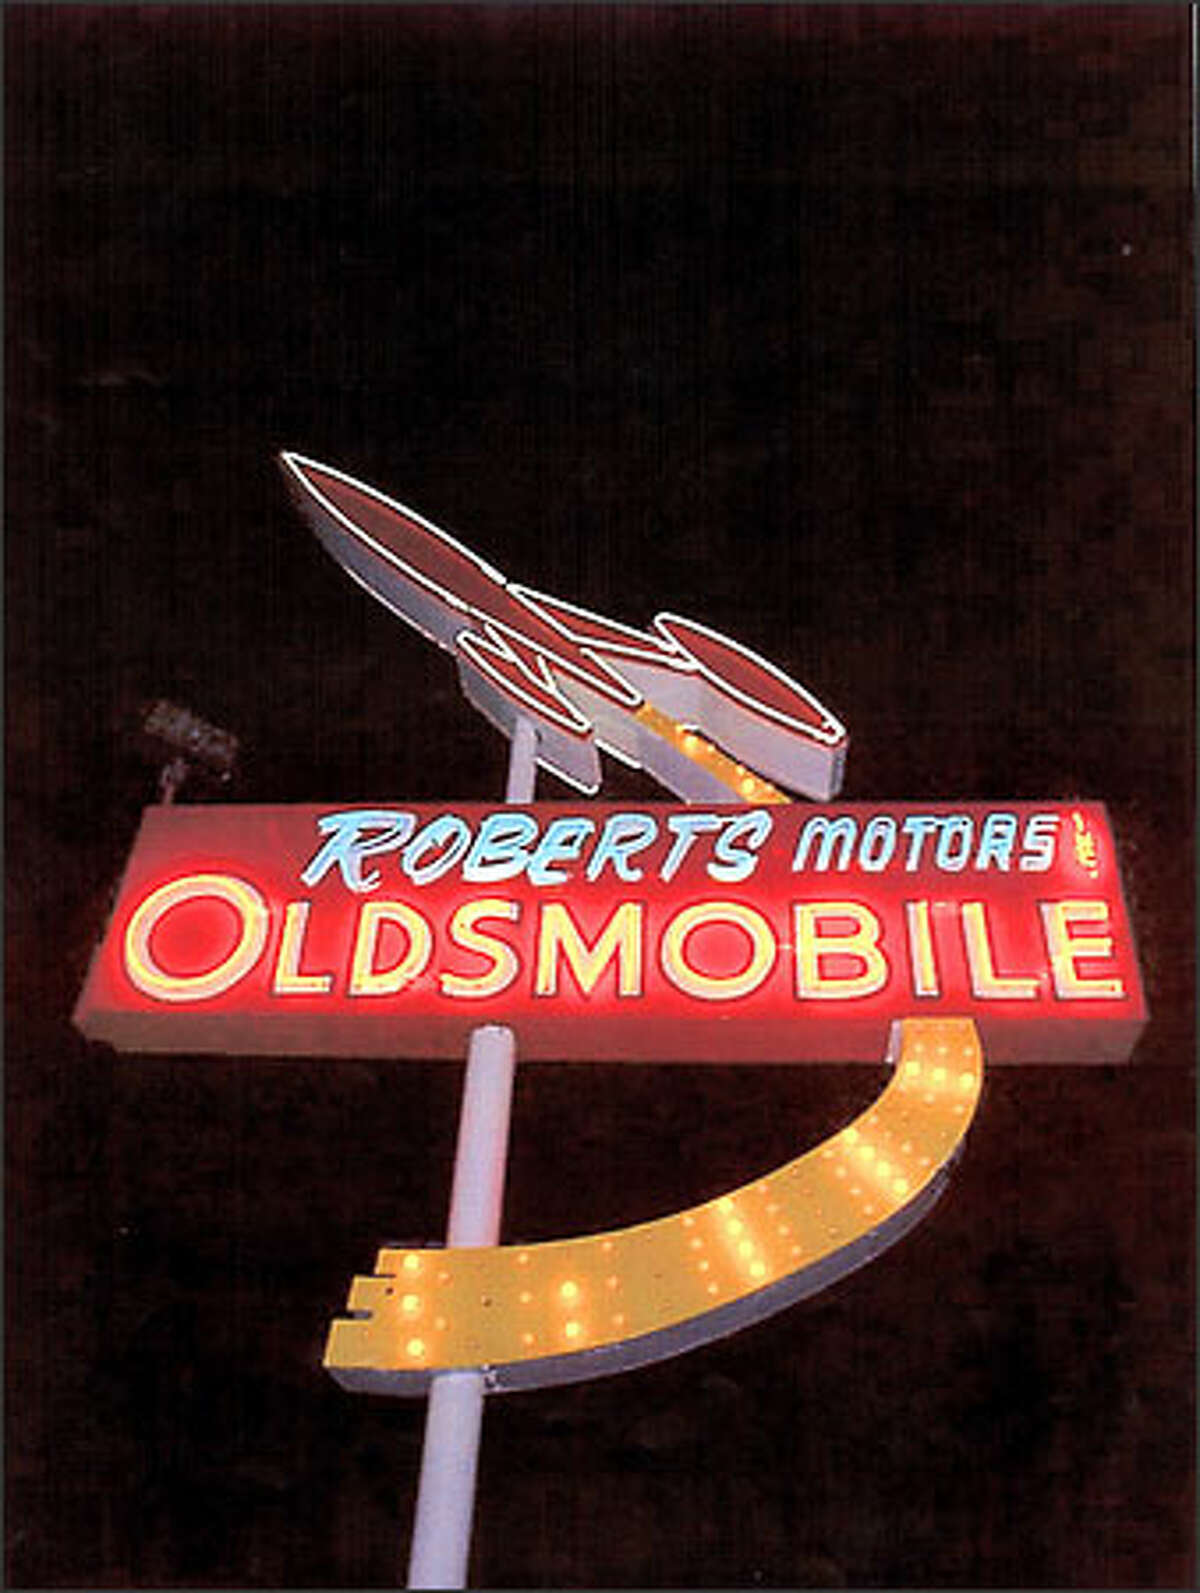 The Roberts Oldsmobile sign in Auburn.